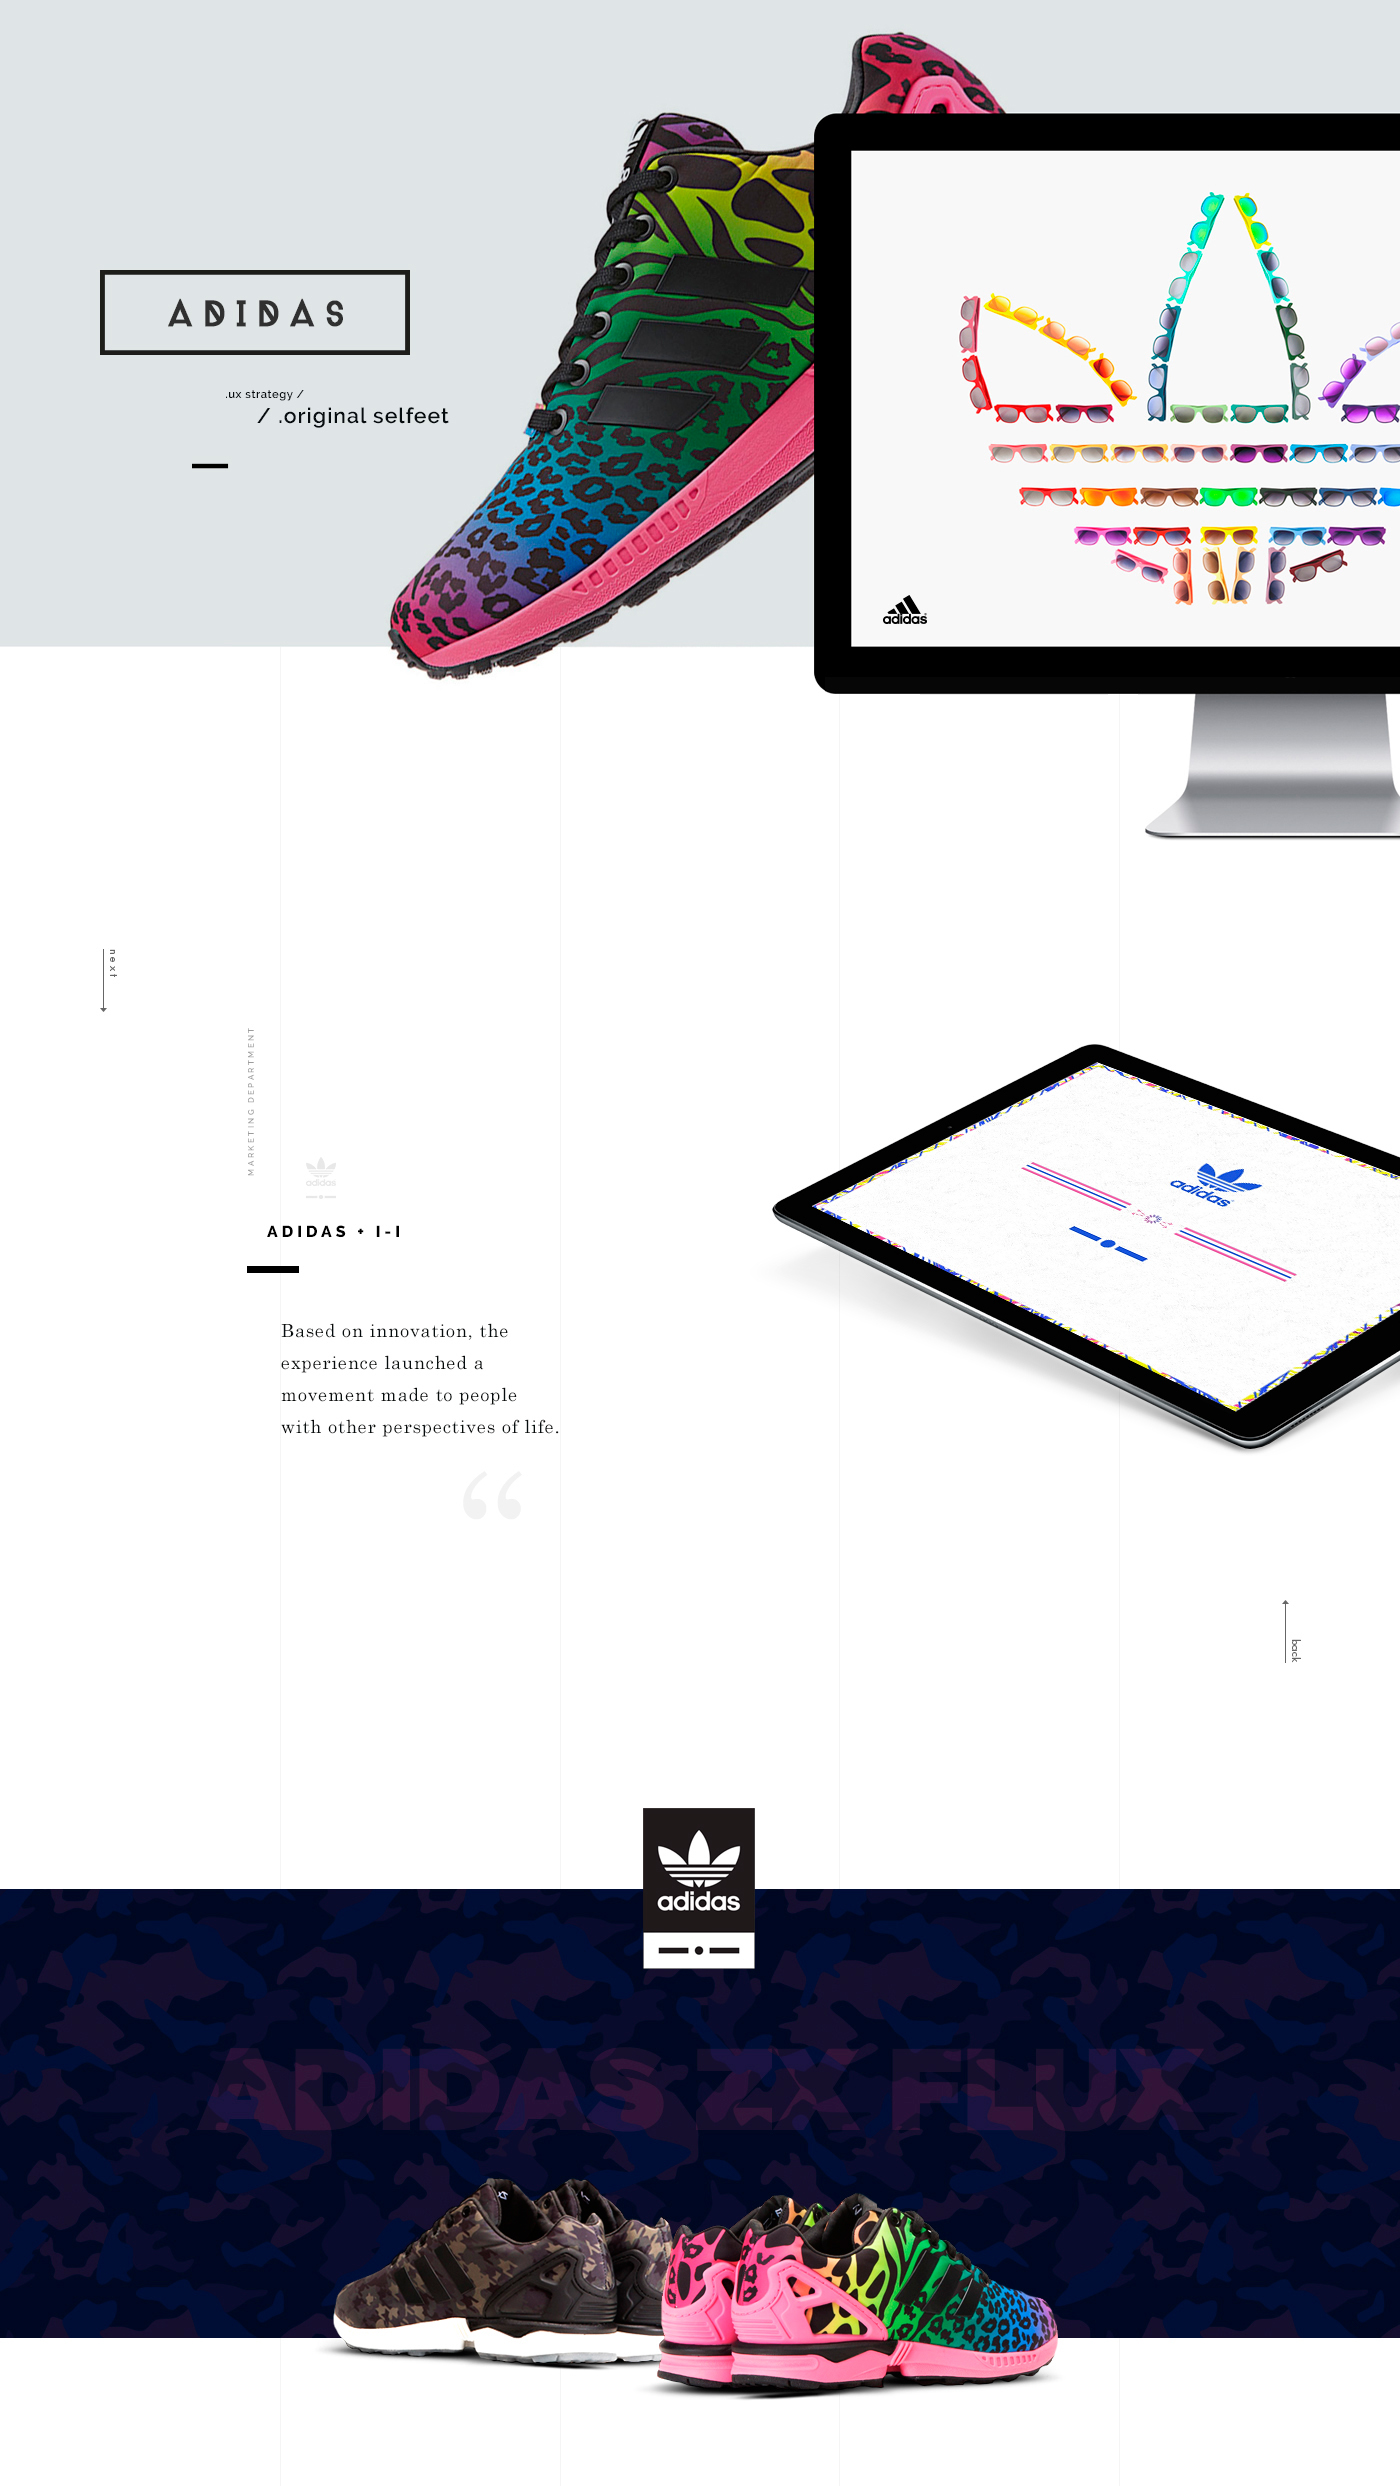 adidas Experience experiencedesign flux zx italia Idependent ux mobile tablet store art direction colors shoes